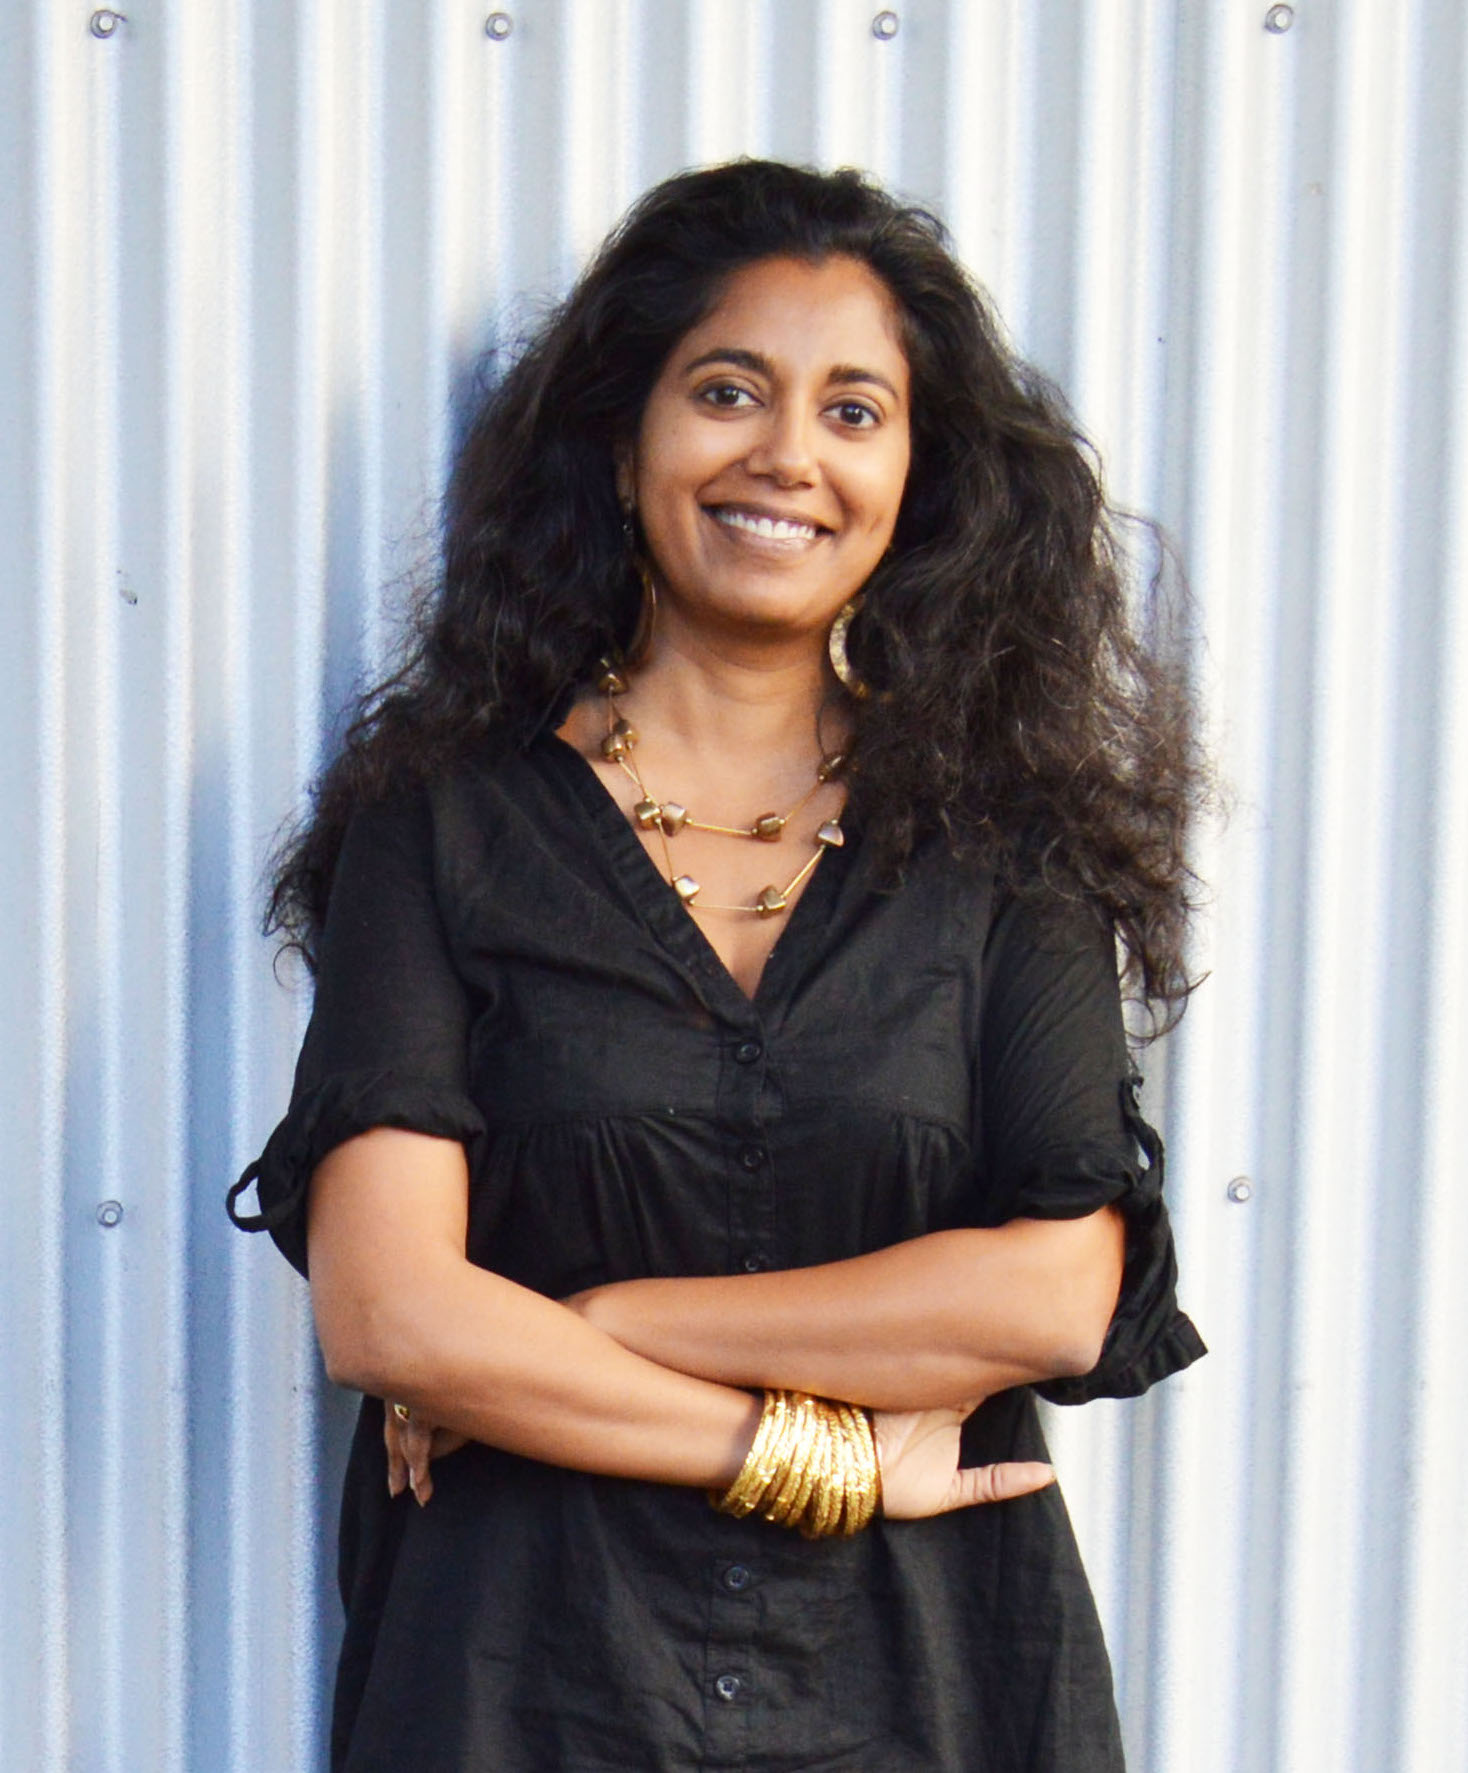 A picture of Mayanthi Fernando standing outside smiling against a white wall